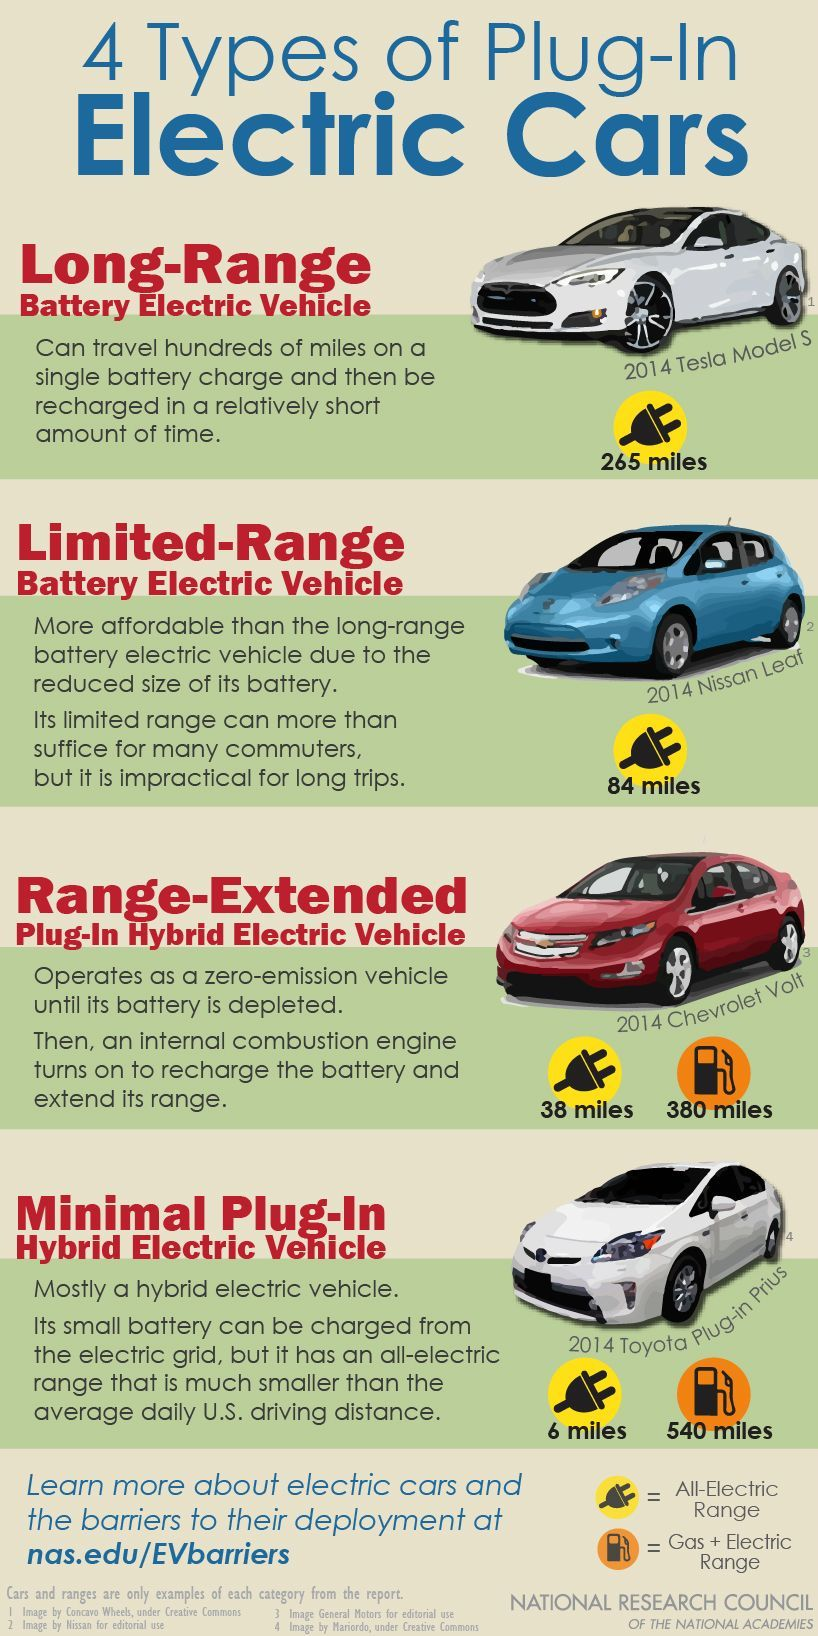 4 Types Of Electric Cars With Images Electric Cars Electric